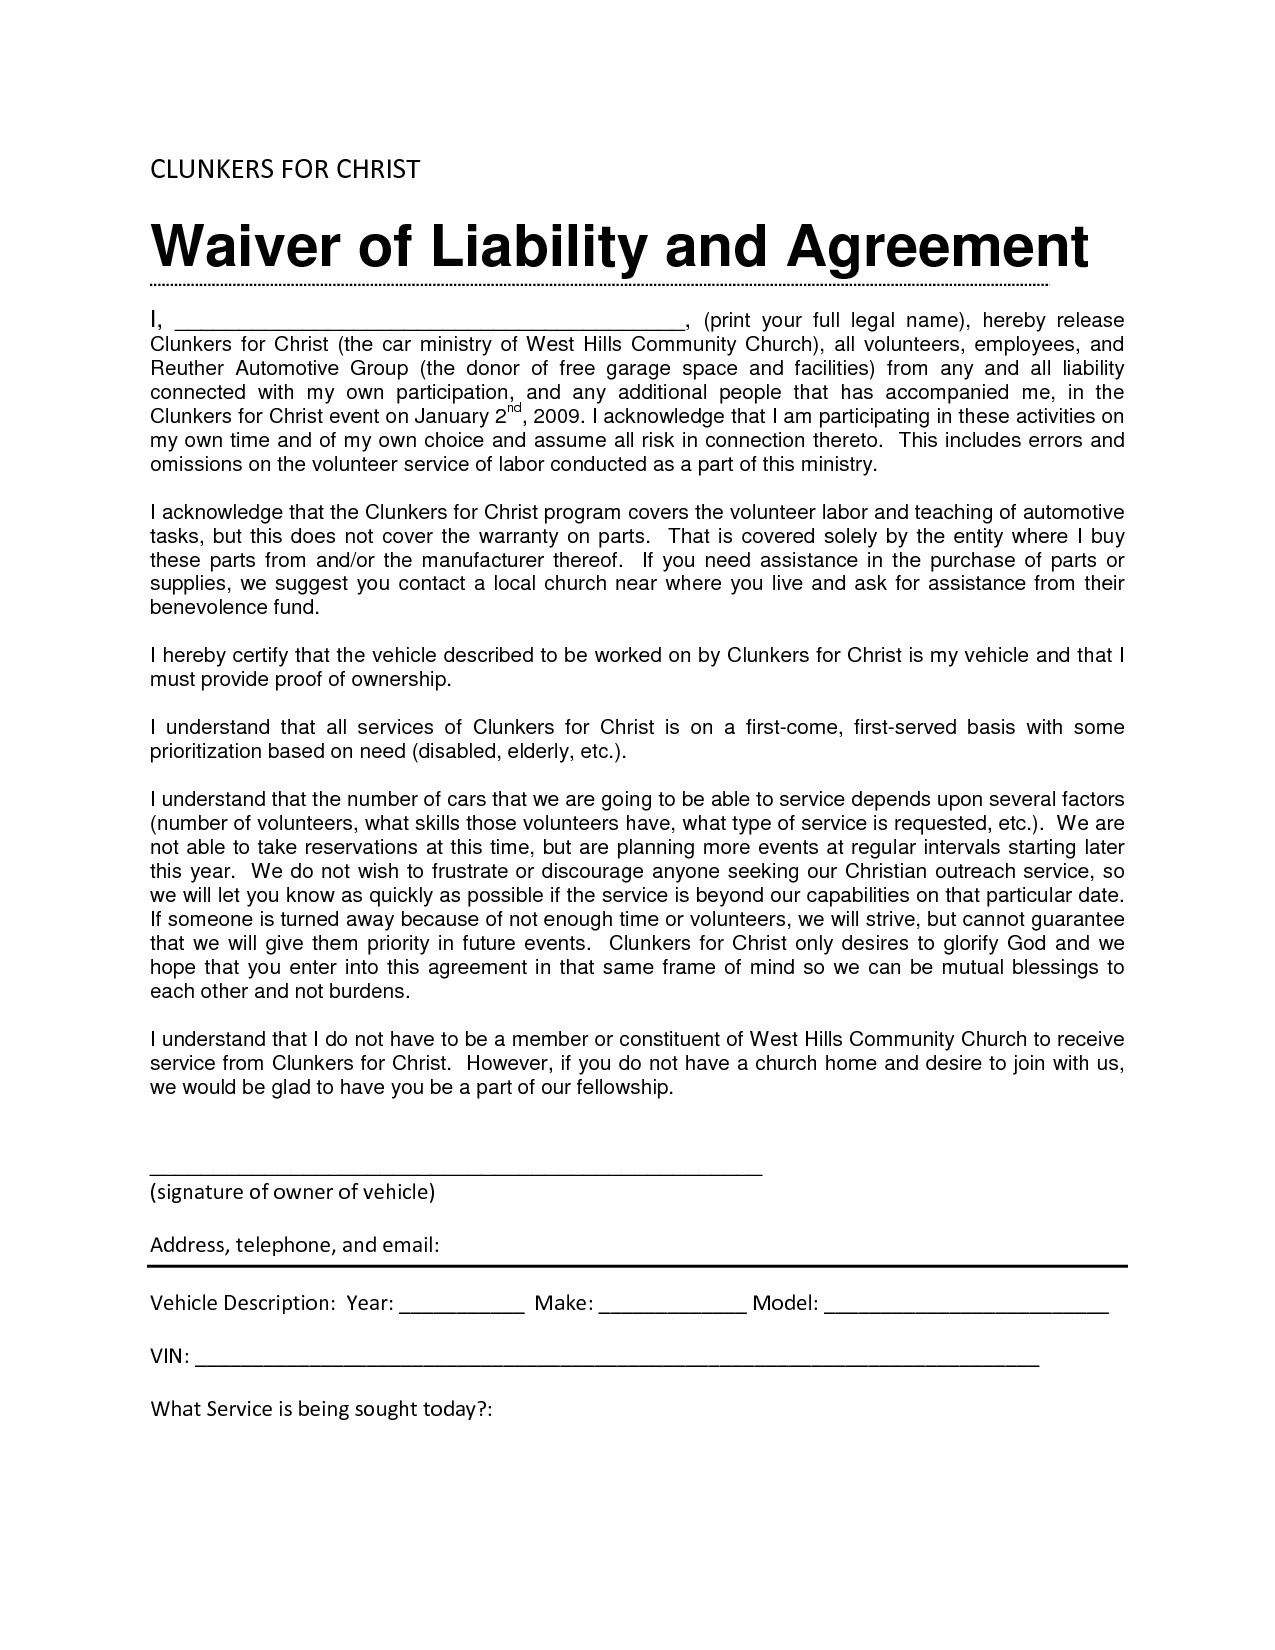 Waiver Of Responsibility Template Liability Waiver Sample Bamboodownunder Com